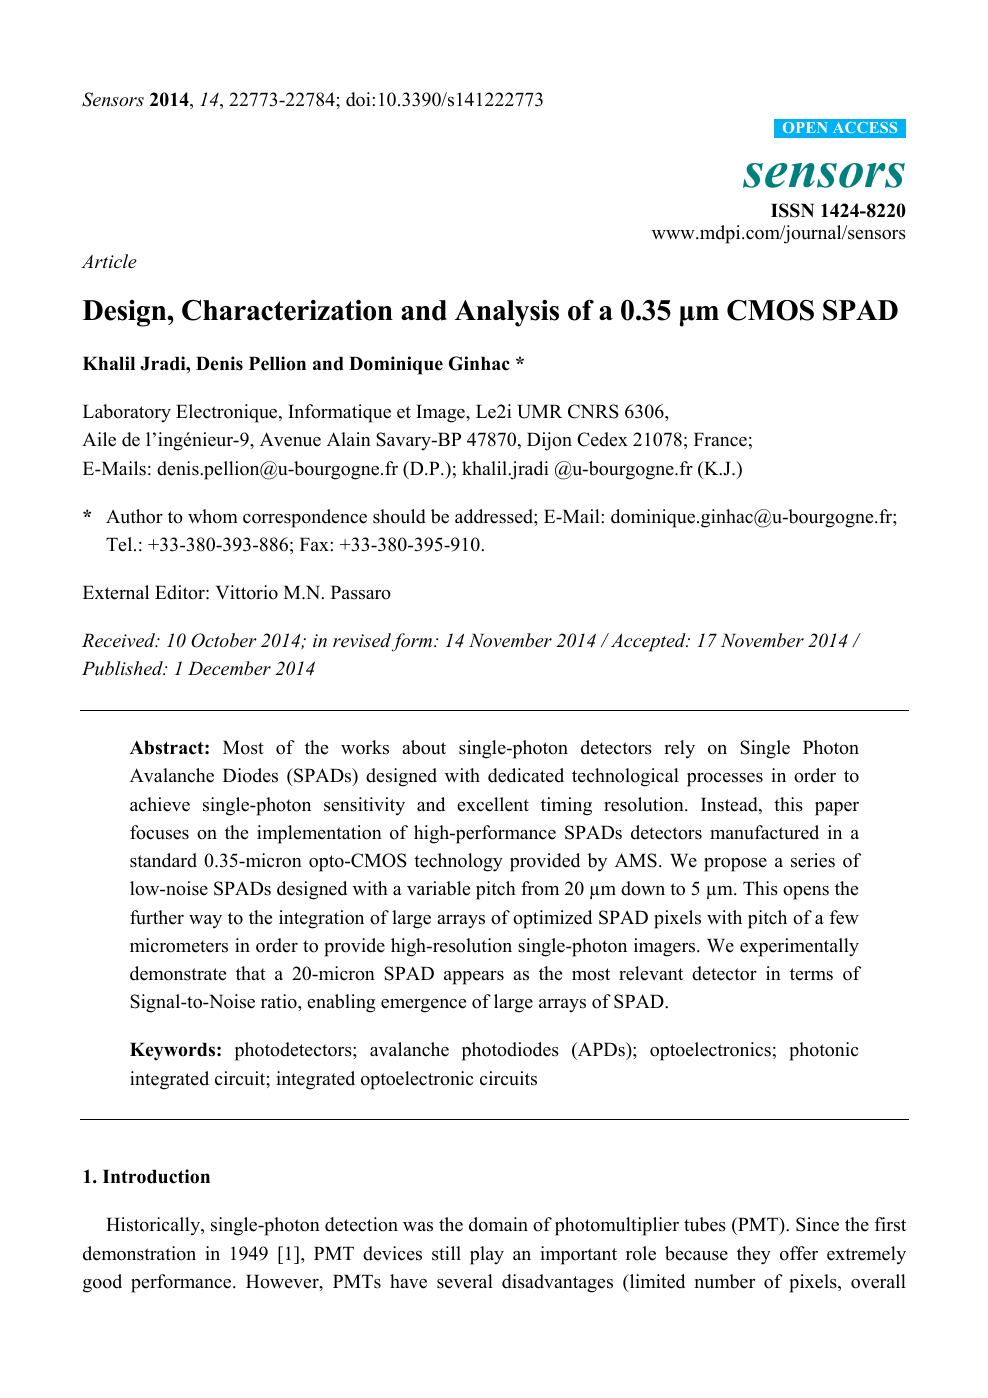 First Circuit Good Academic Performance >> Design Characterization And Analysis Of A 0 35 Mm Cmos Spad Topic